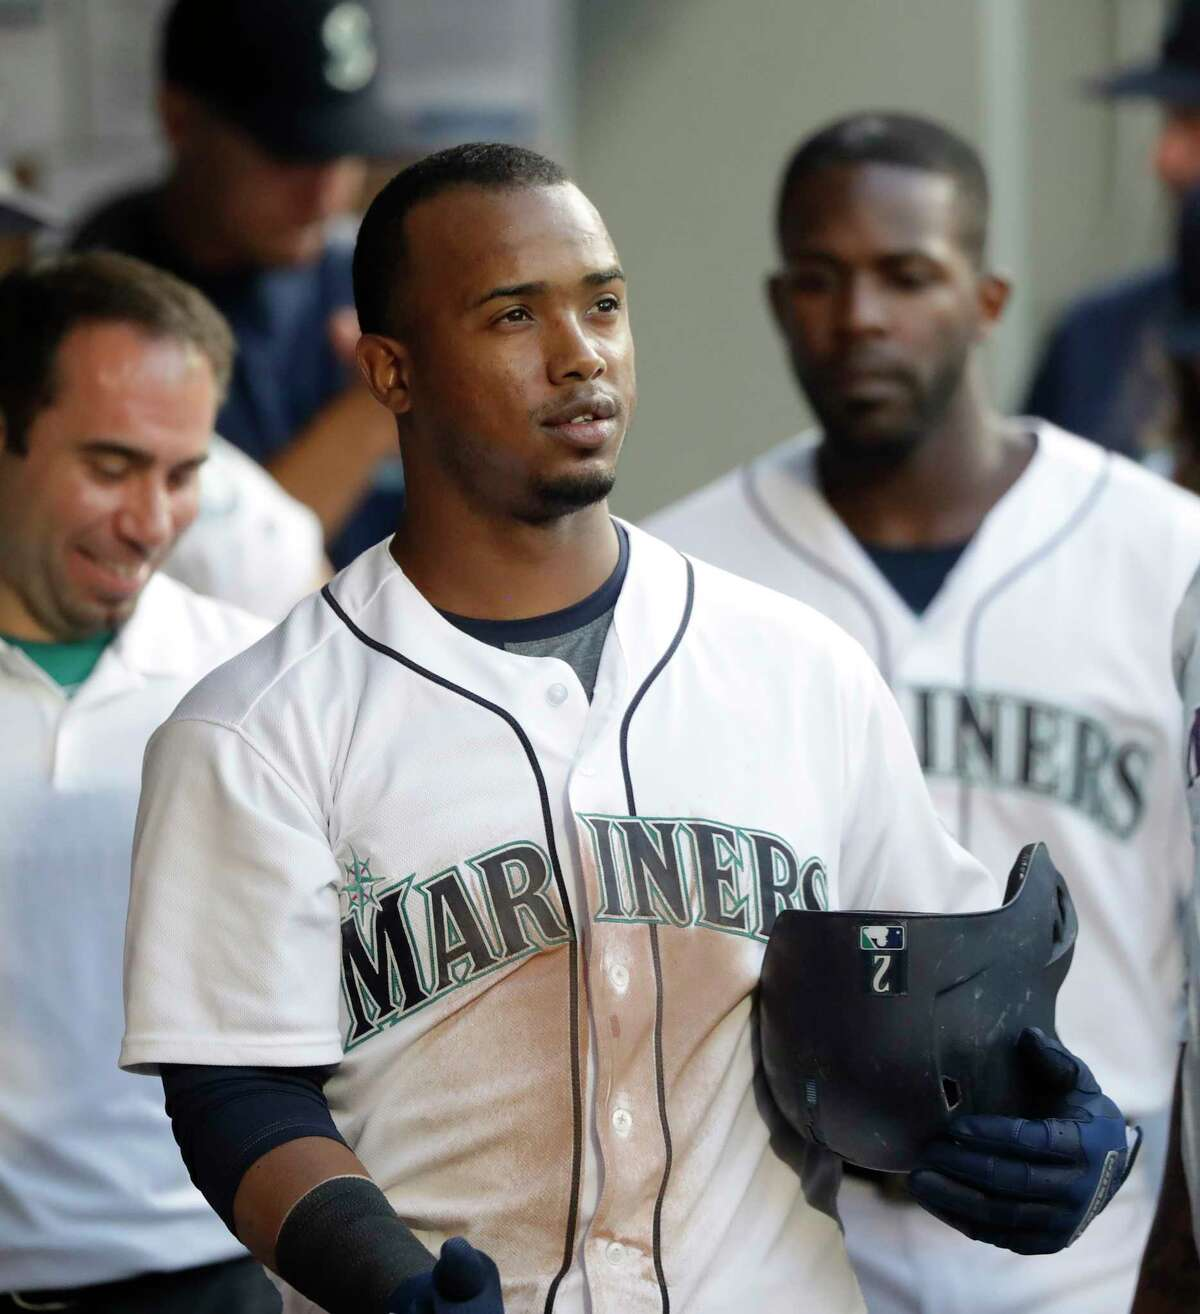 Seattle Mariners' Jean Segura smiles in the dugout after his home run against the Houston Astros in the fourth inning of a baseball game Tuesday, July 31, 2018, in Seattle. (AP Photo/Elaine Thompson)